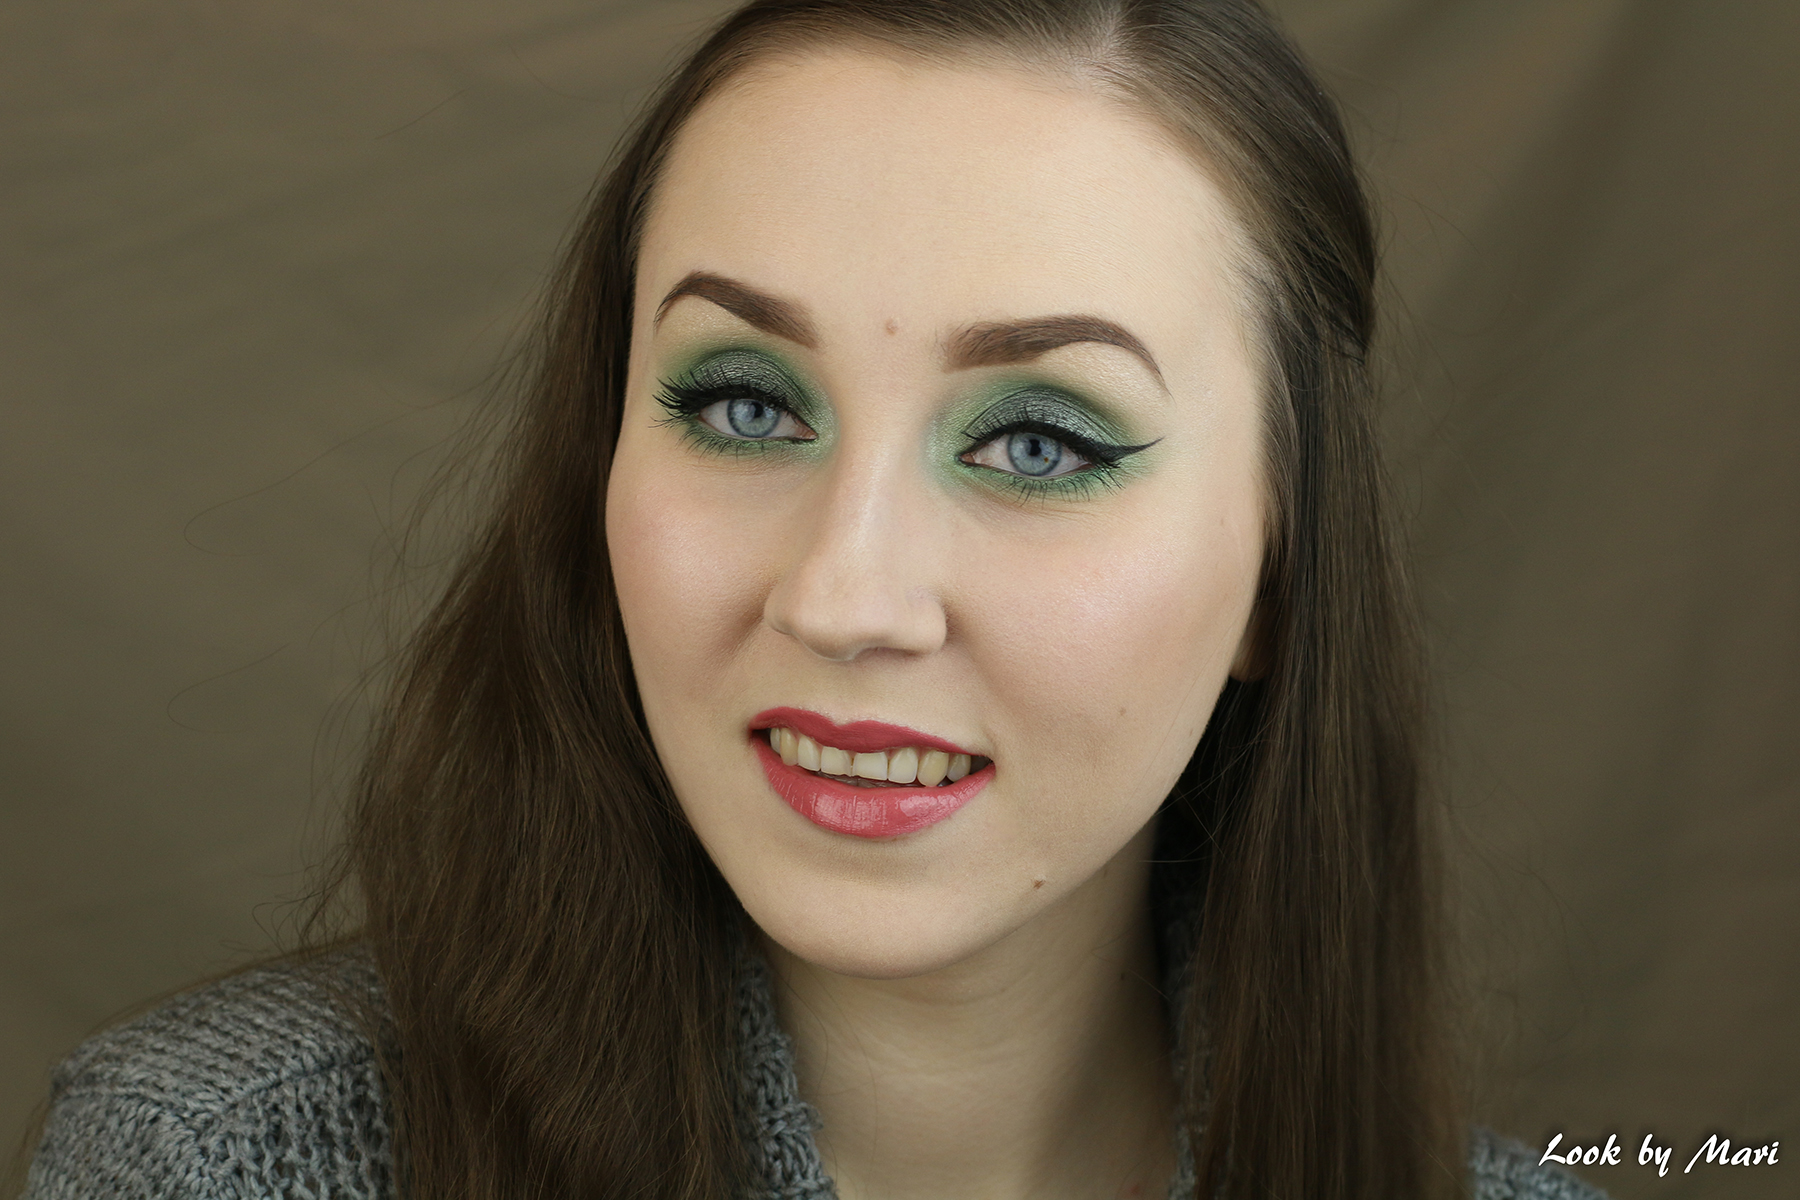 1 green eye makeup smoky eyes tutorial ideas inspo